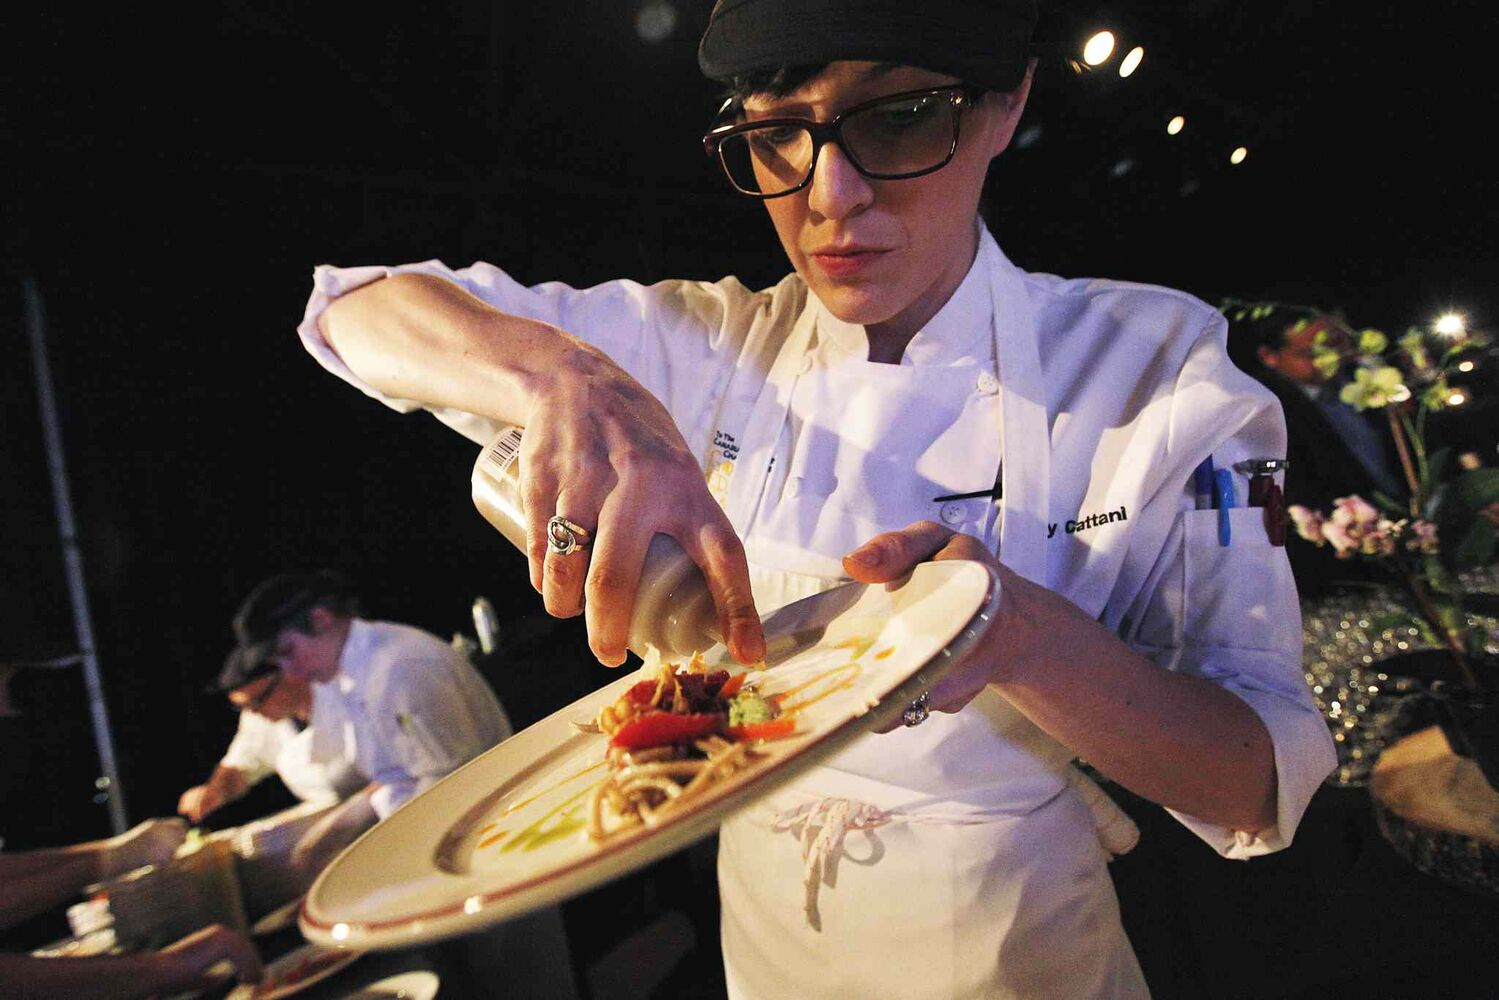 Kelly Cattani of Elements the Restaurant (Winnipeg Free Press)